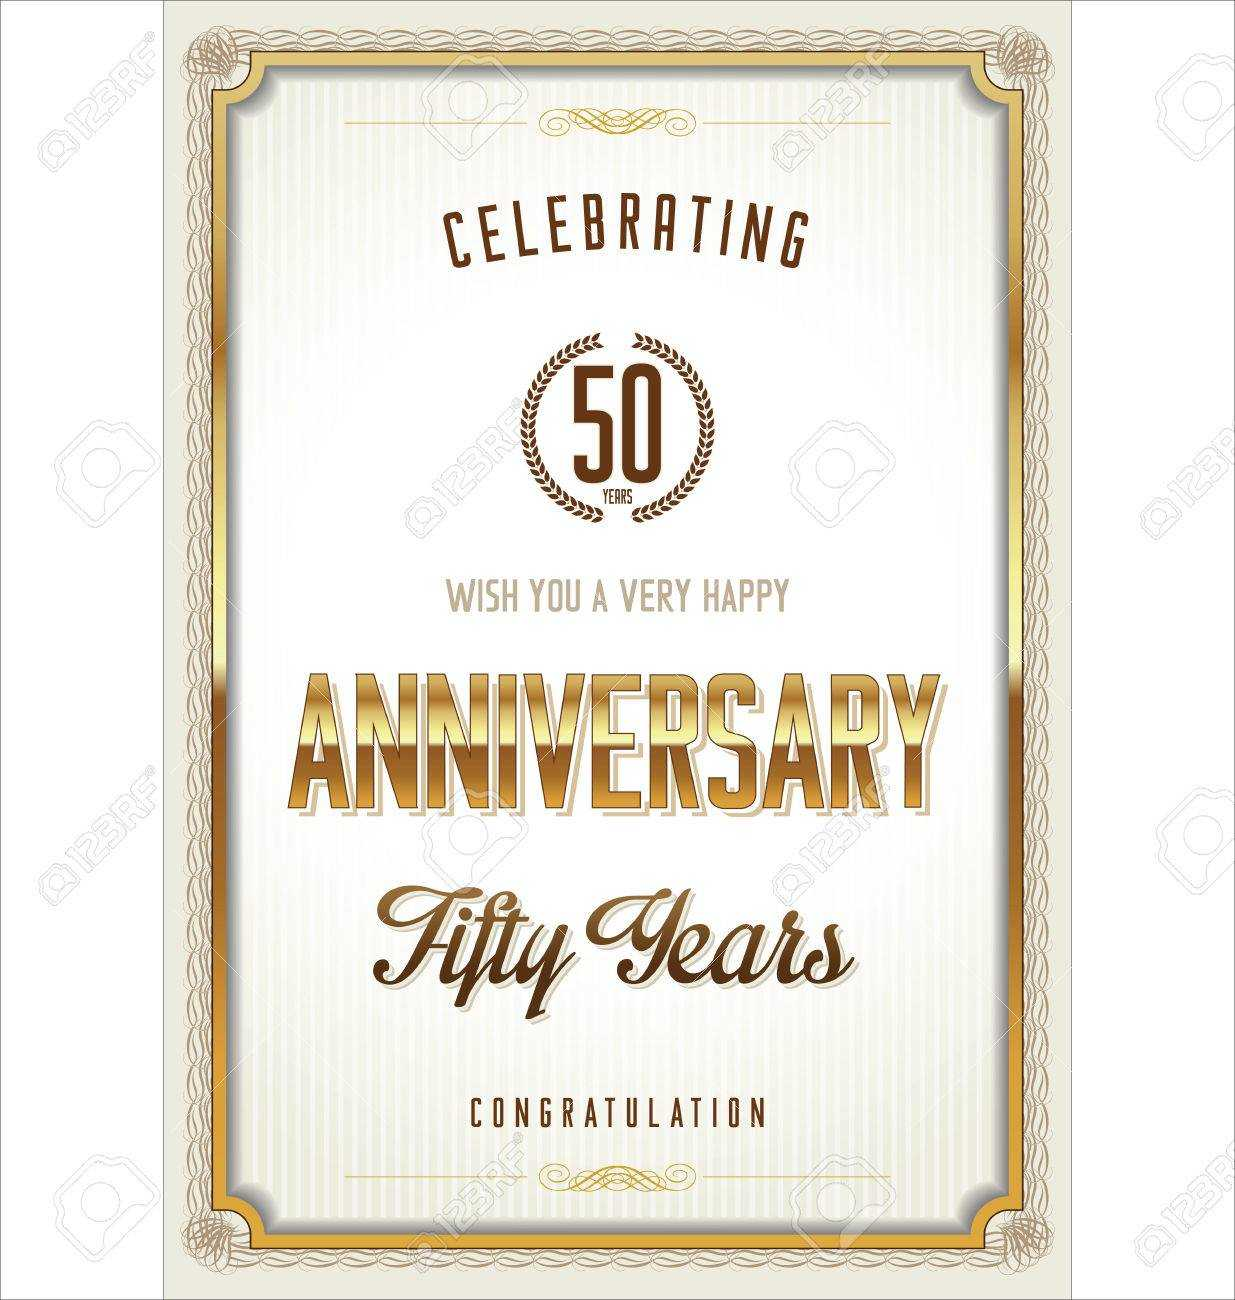 Anniversary Certificate Template Inside Anniversary Certificate Template Free